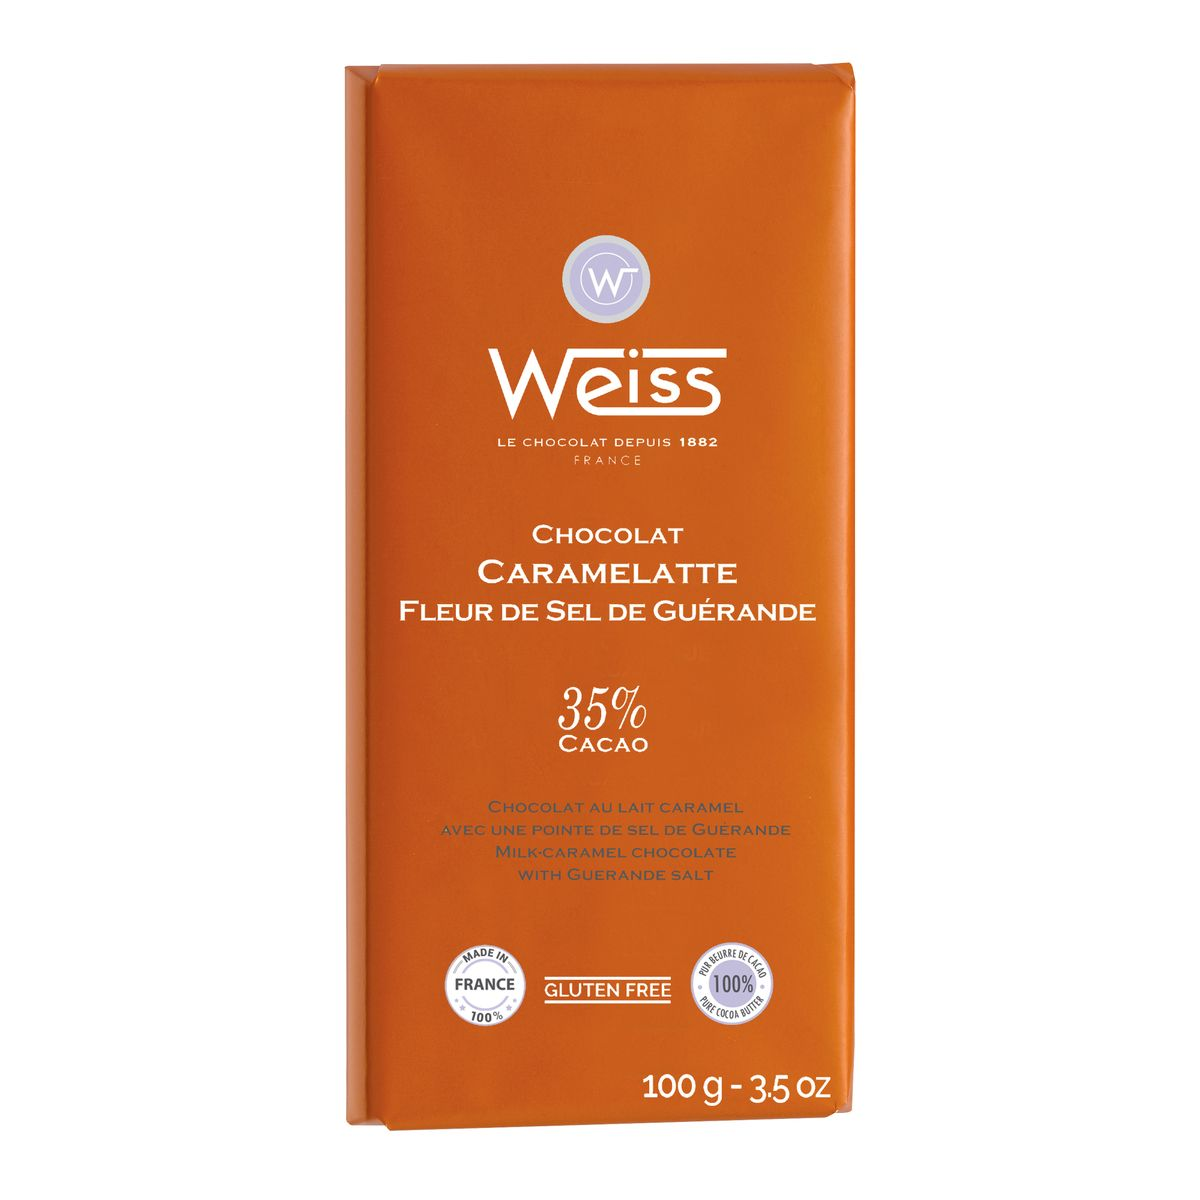 Tablette caramelatte pointe de sel 100gr - Weiss